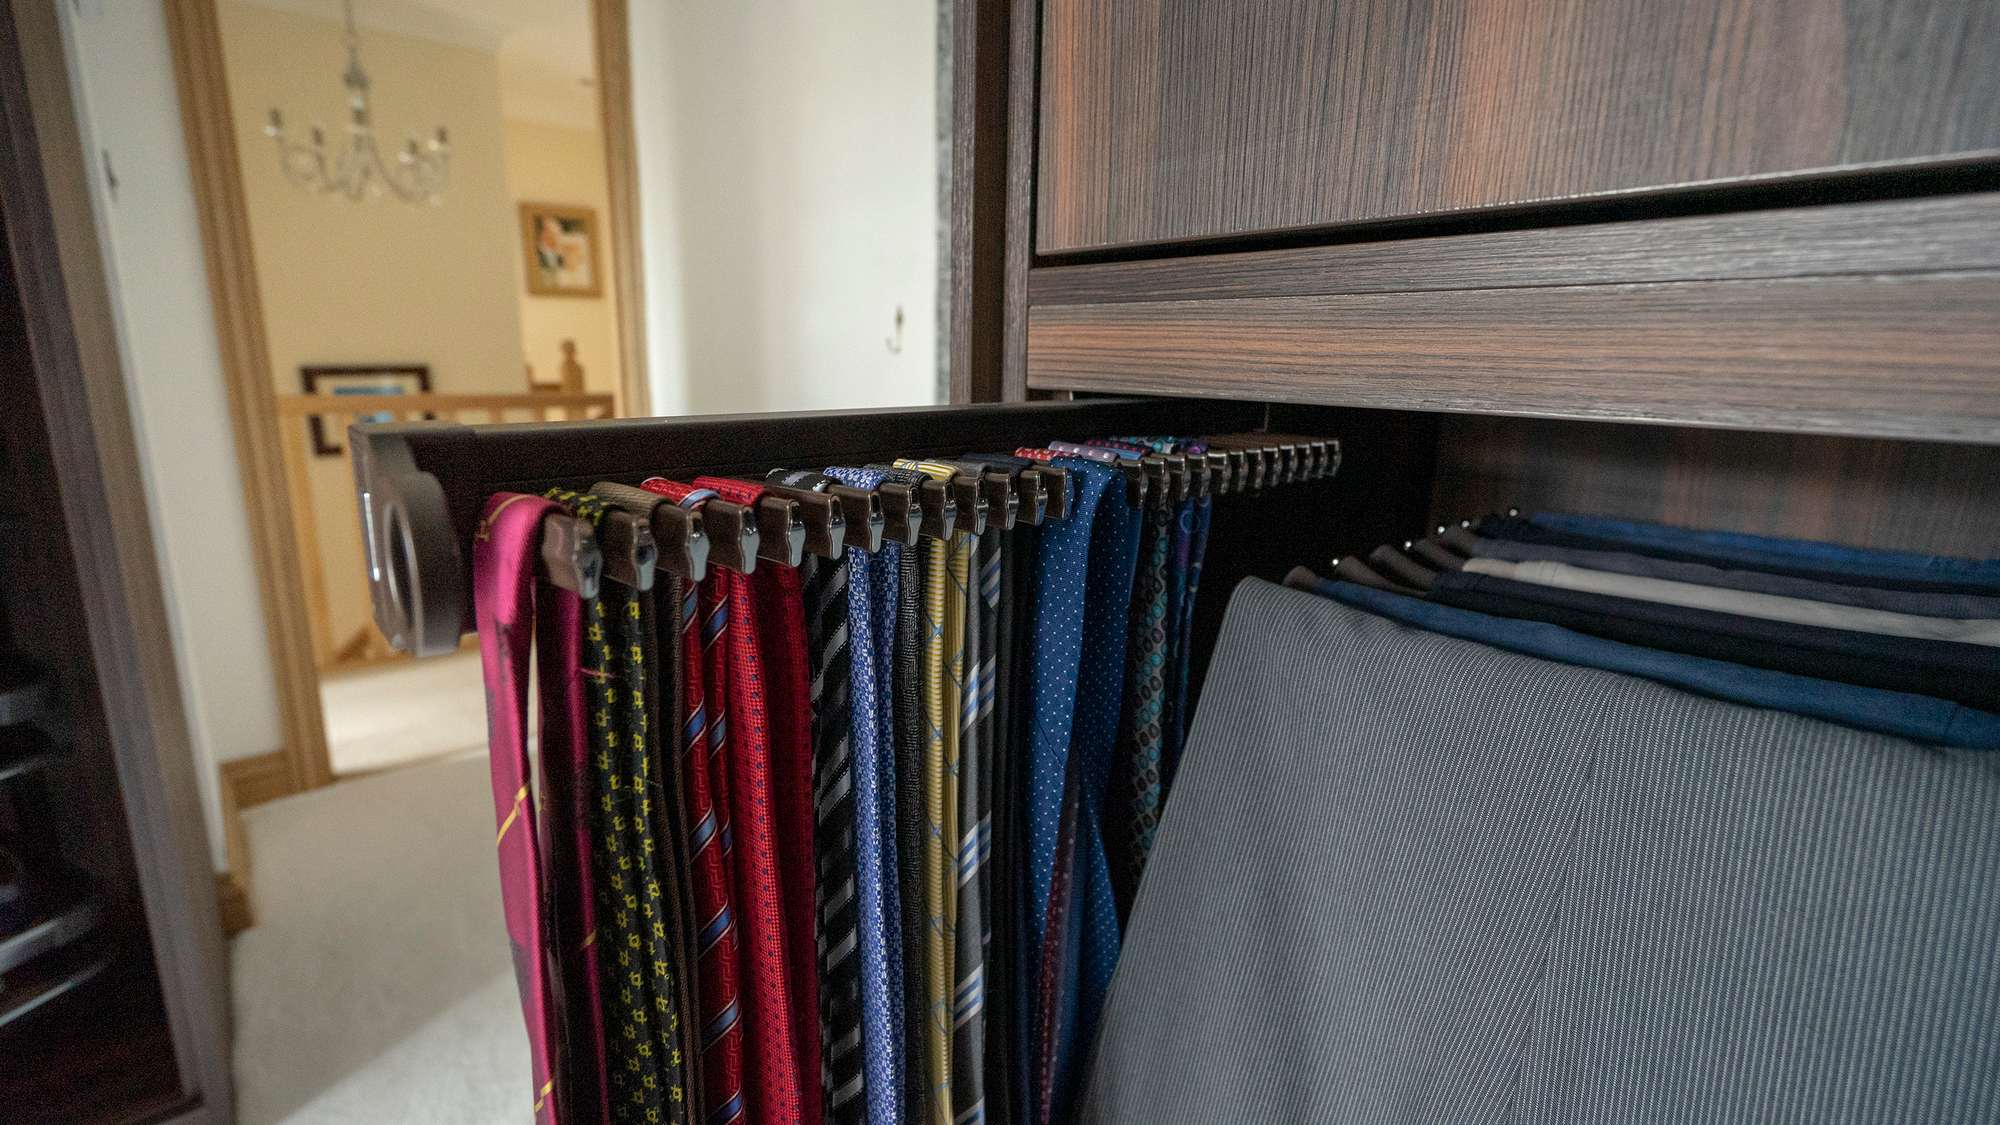 Close up shot of the pull out tie racks.